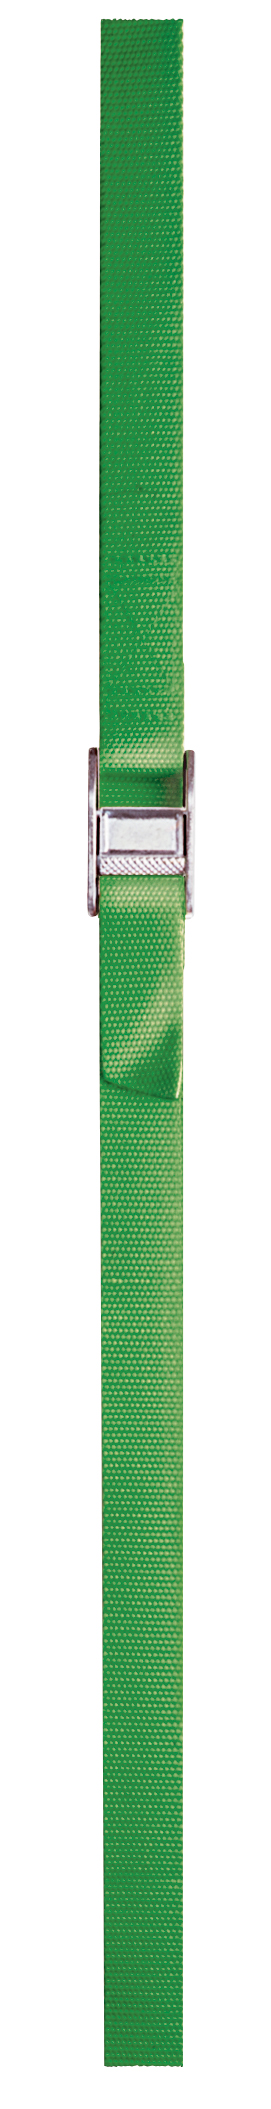 DOTTIE WS06 6FT WEB STRAP (GREEN)